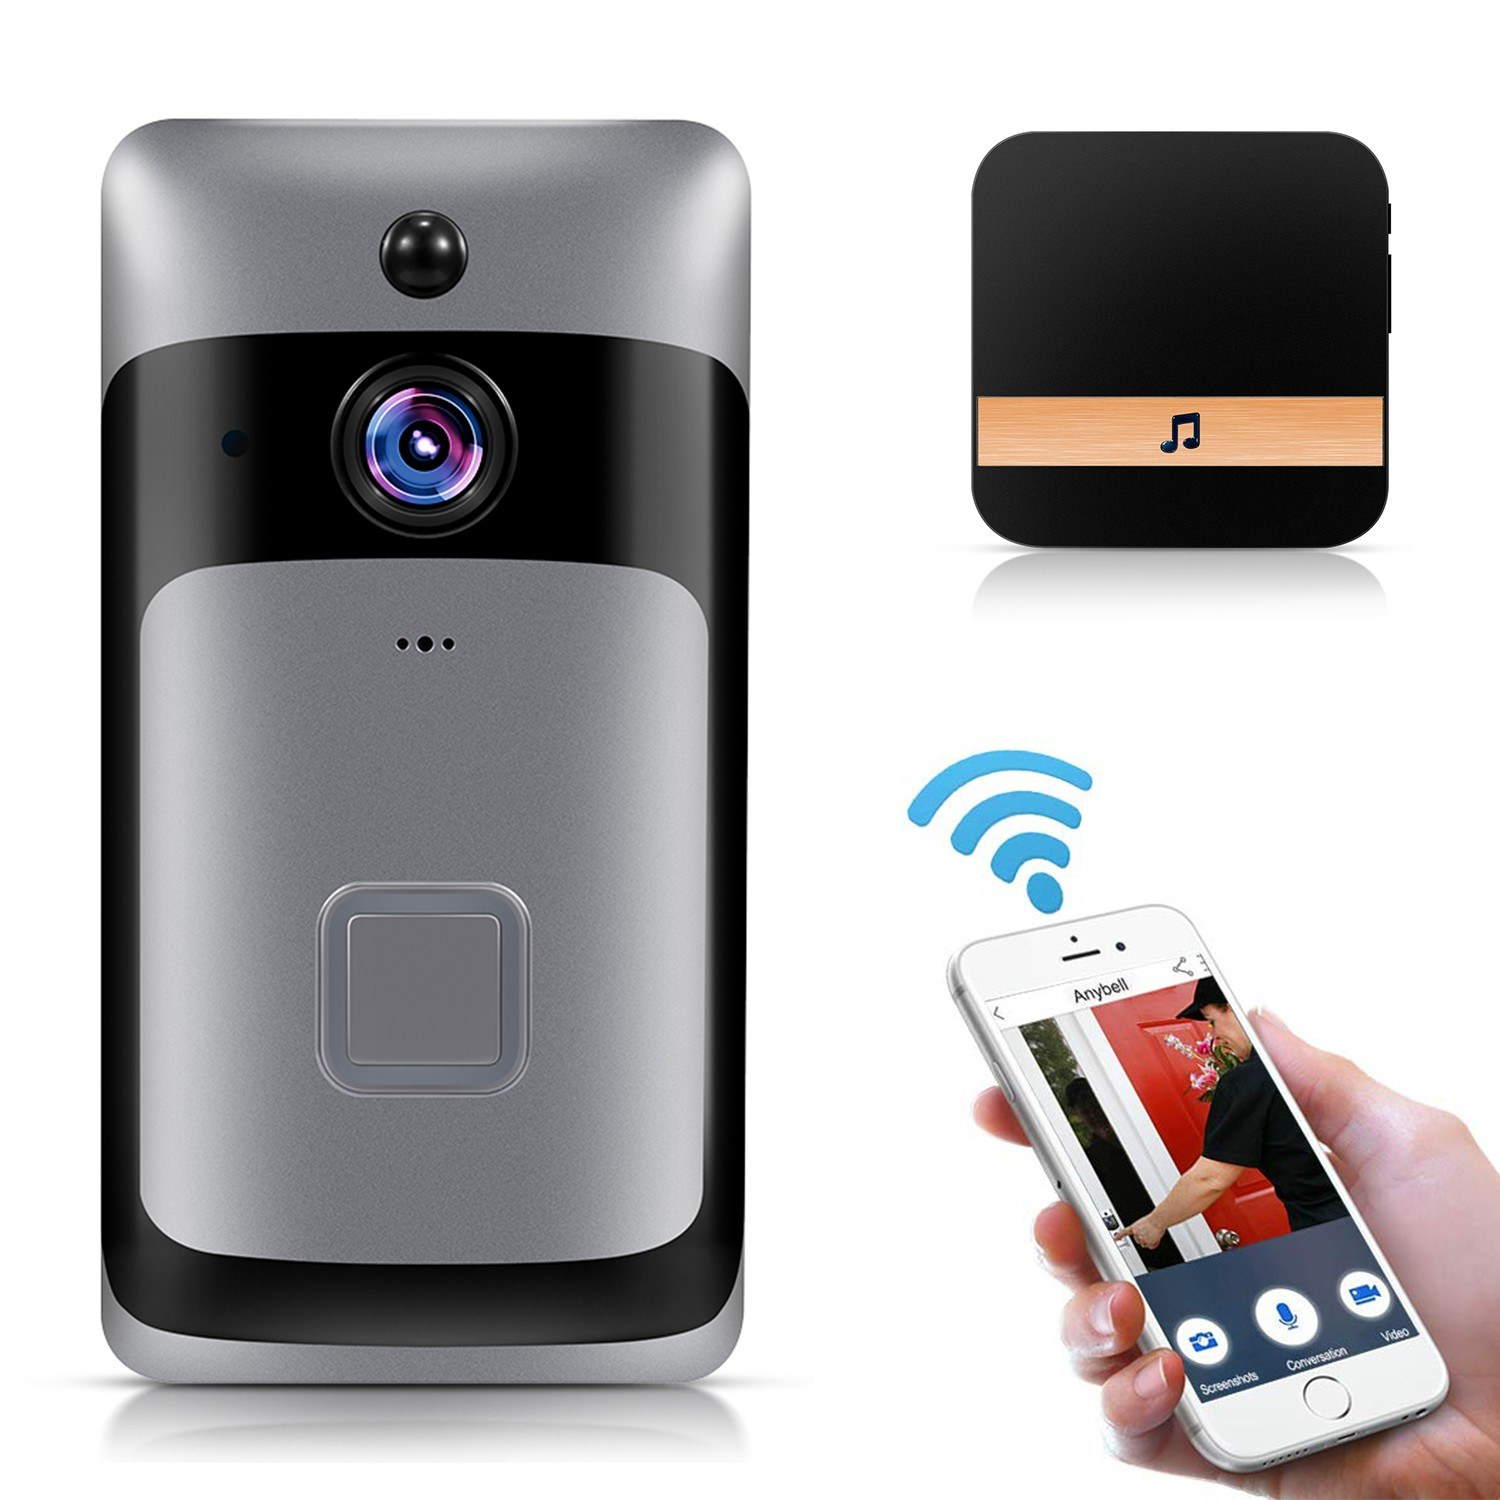 Smart Home WiFi Doorbell 1080P HD Security Camera with Two-Way Audio PIR Motion Detection IR Night Vision 160-Degree Wide Angle Lens Wireless Doorbell XF-IP007D-S Silver with Black UK Plug Chime